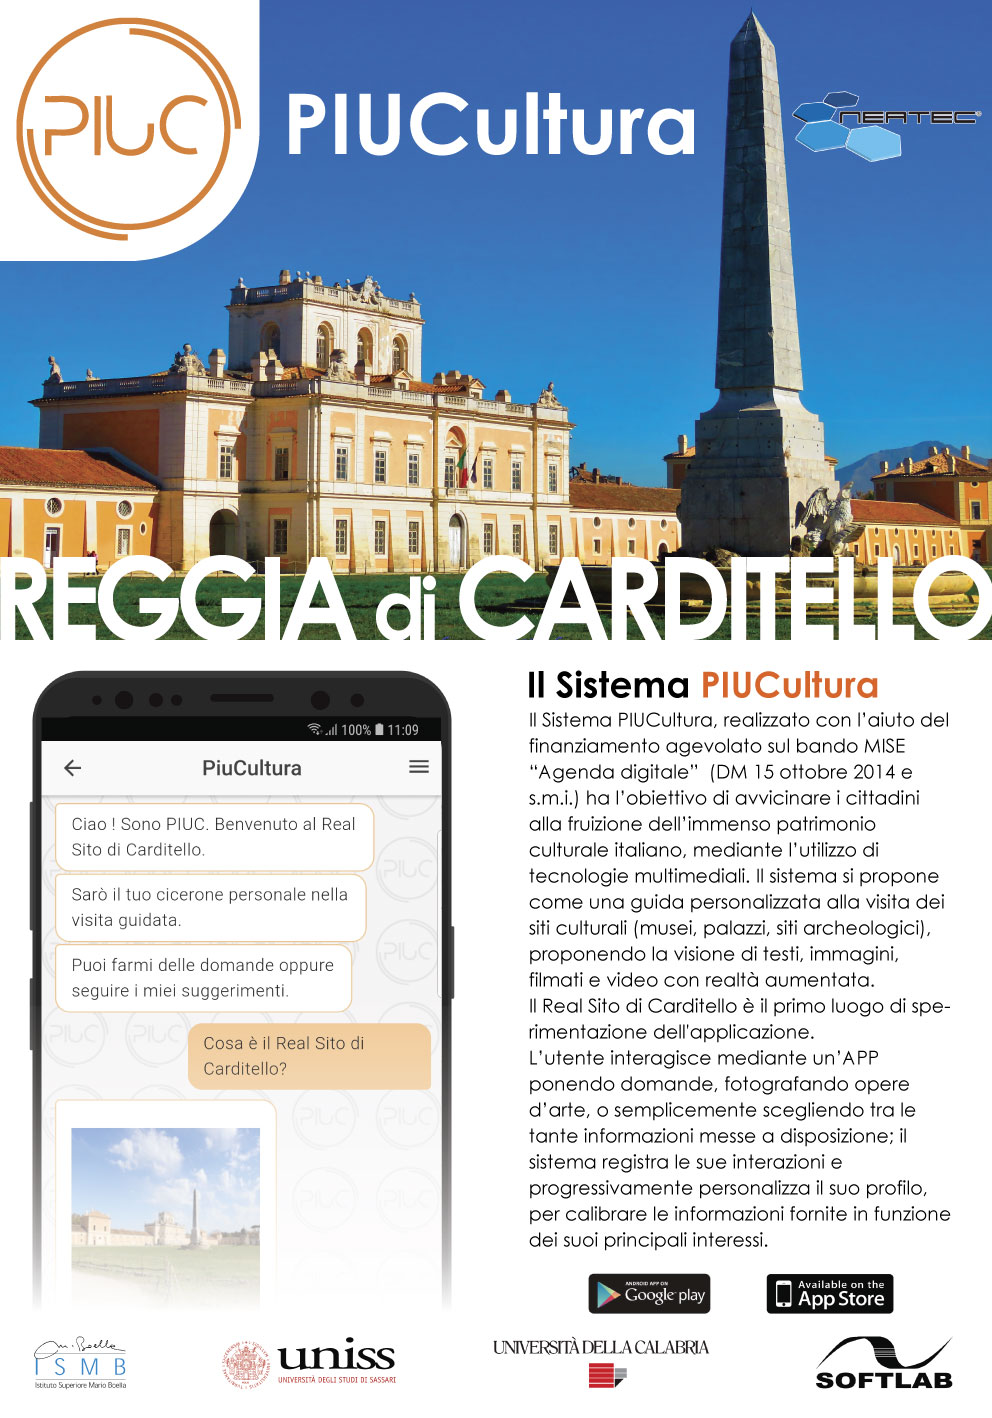 PiuCultura_Carditello_prev_02